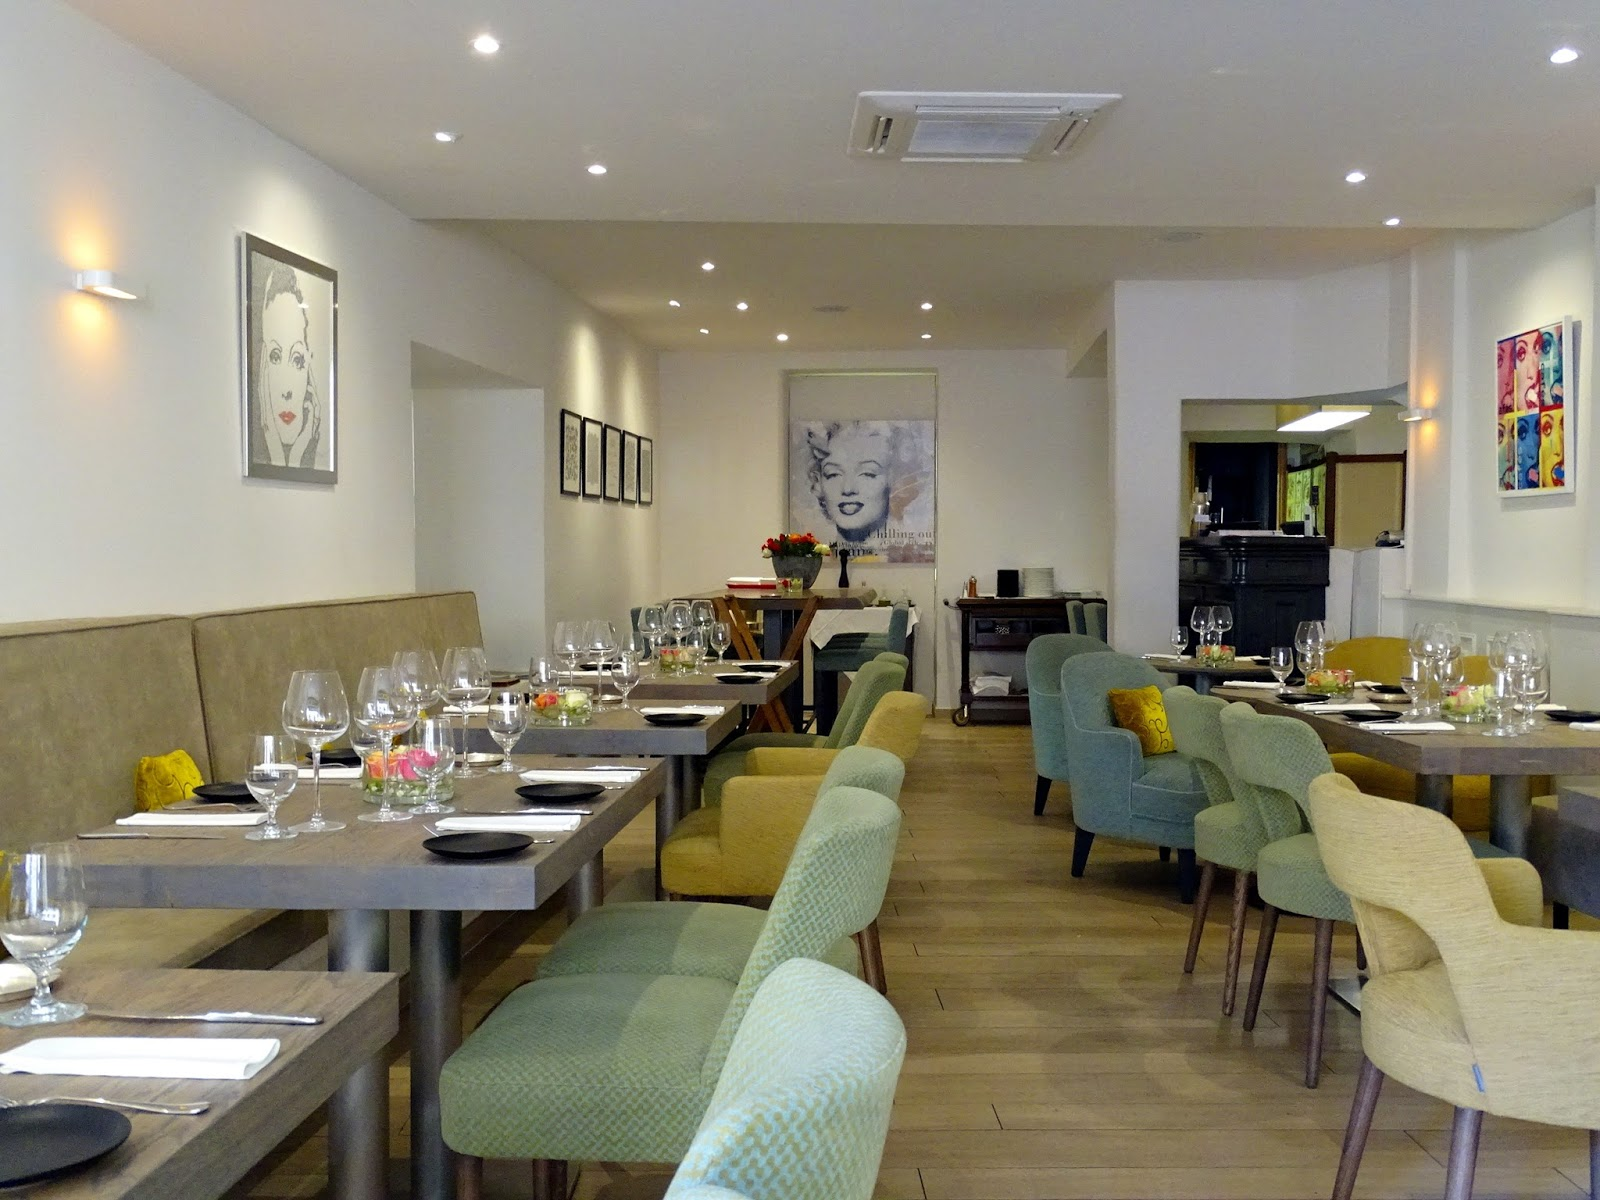 Restaurant mantel cannes france a traveling for Table 22 cannes